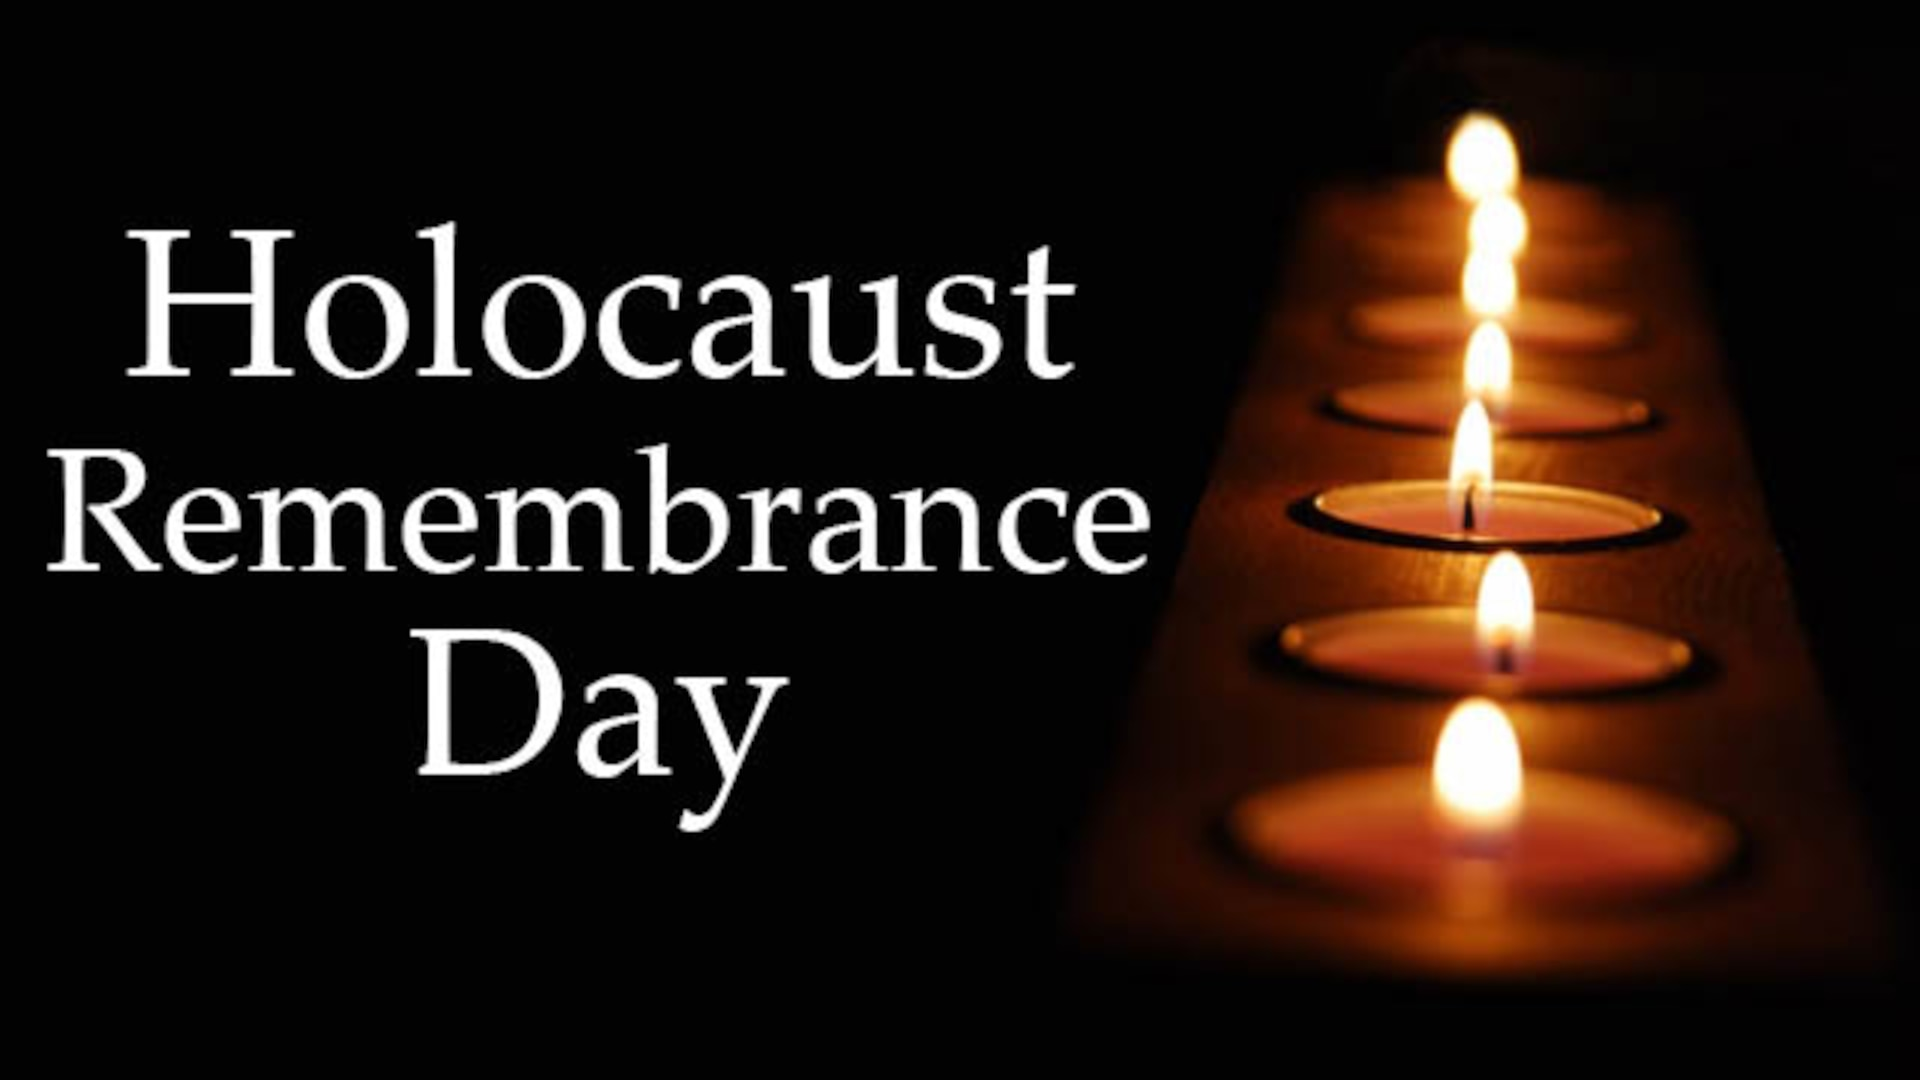 Defense Contract Management Agency's Equal Employment Opportunity Office is offering its employees multiple ways to commemorate Holocaust Remembrance Day/Days of Remembrance observance.